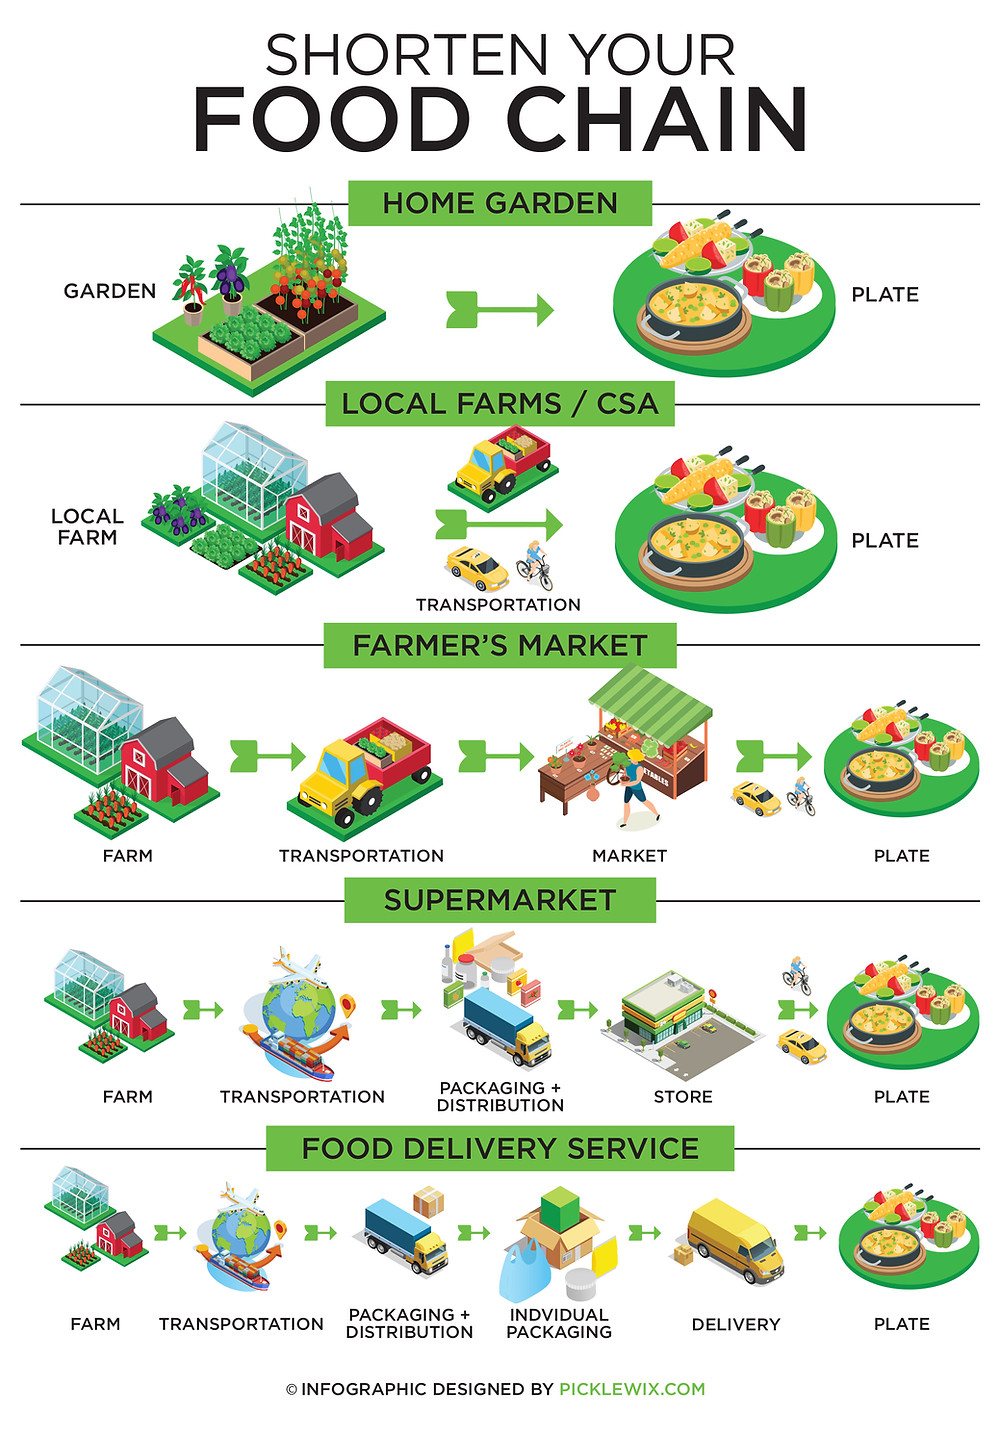 Shorten Your Food Chain Infographic - designed by Picklewix.com